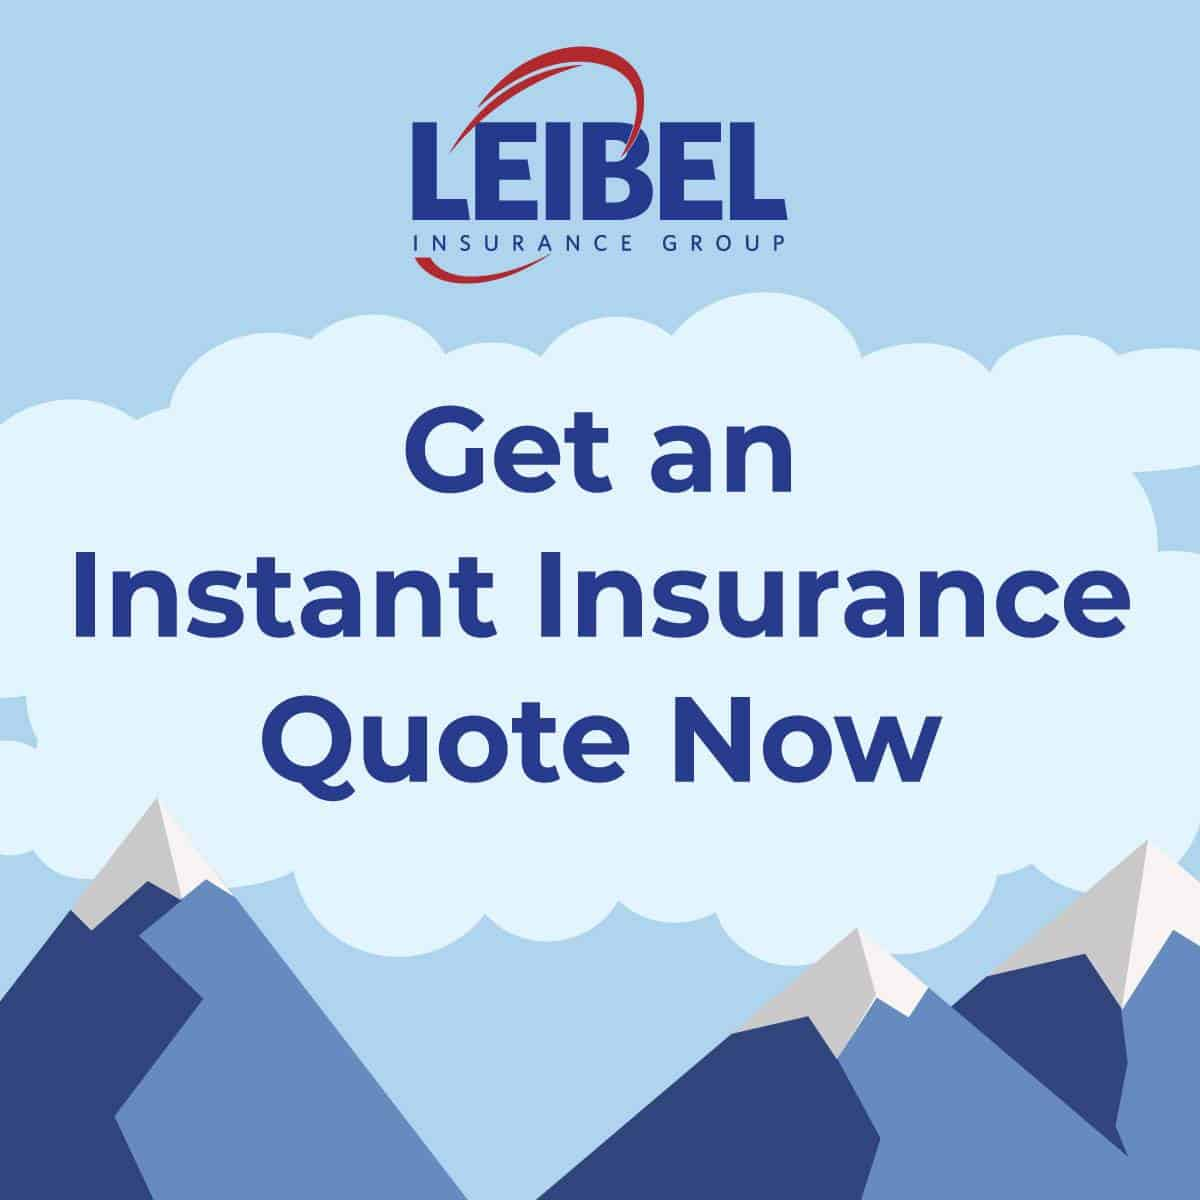 Get-an-instant-insurance-quote-now